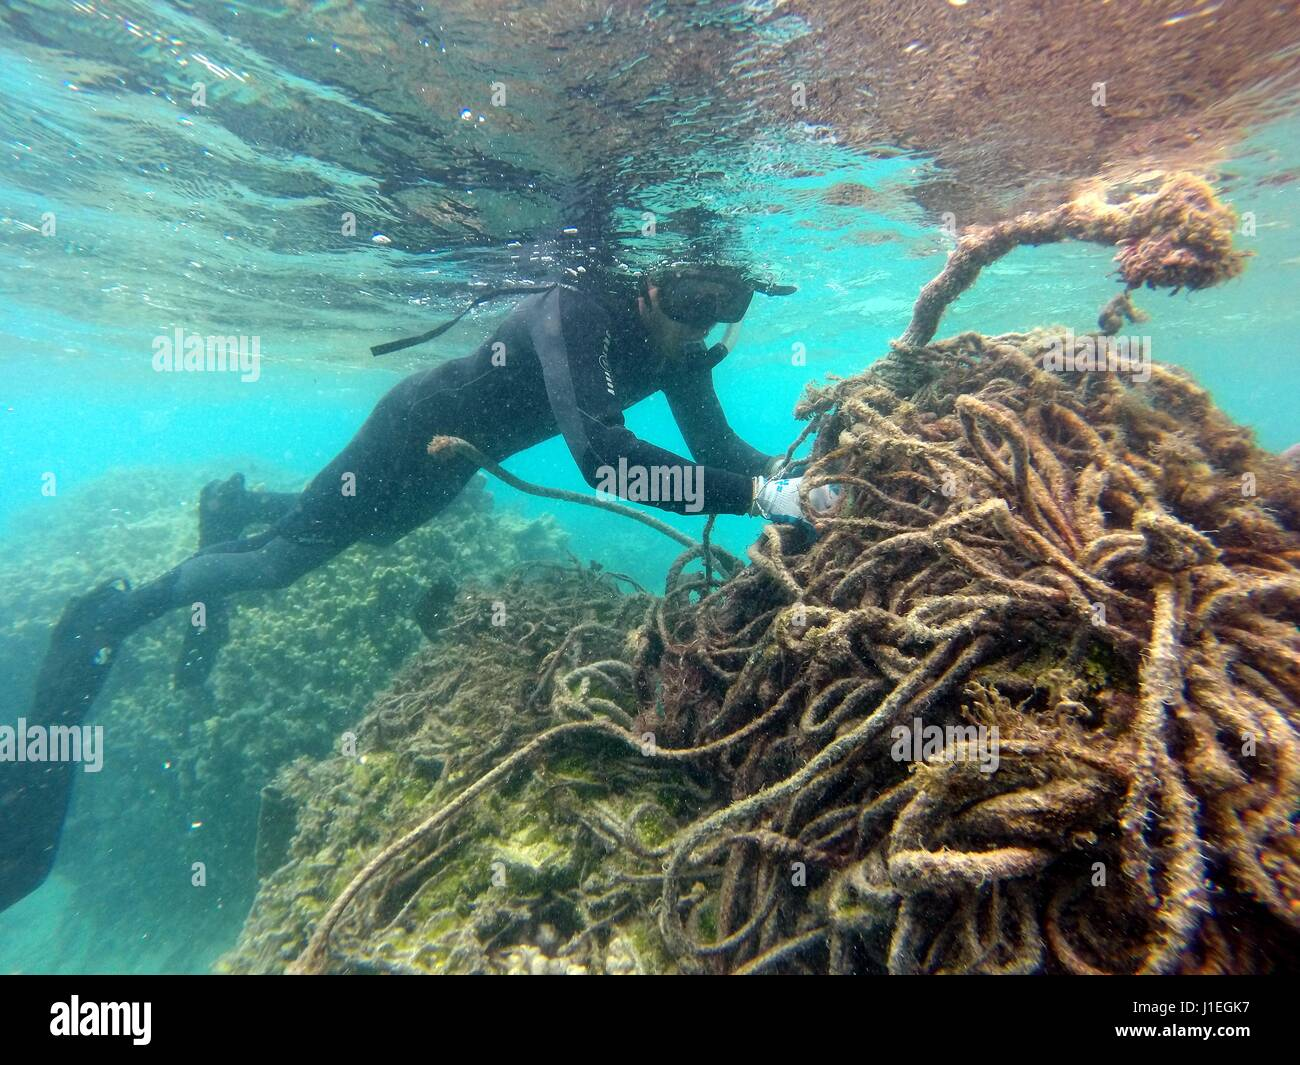 Hawaiian State employees collect discarded nets, plastic and marine debris from the lagoon on Kure Atoll June 16, - Stock Image